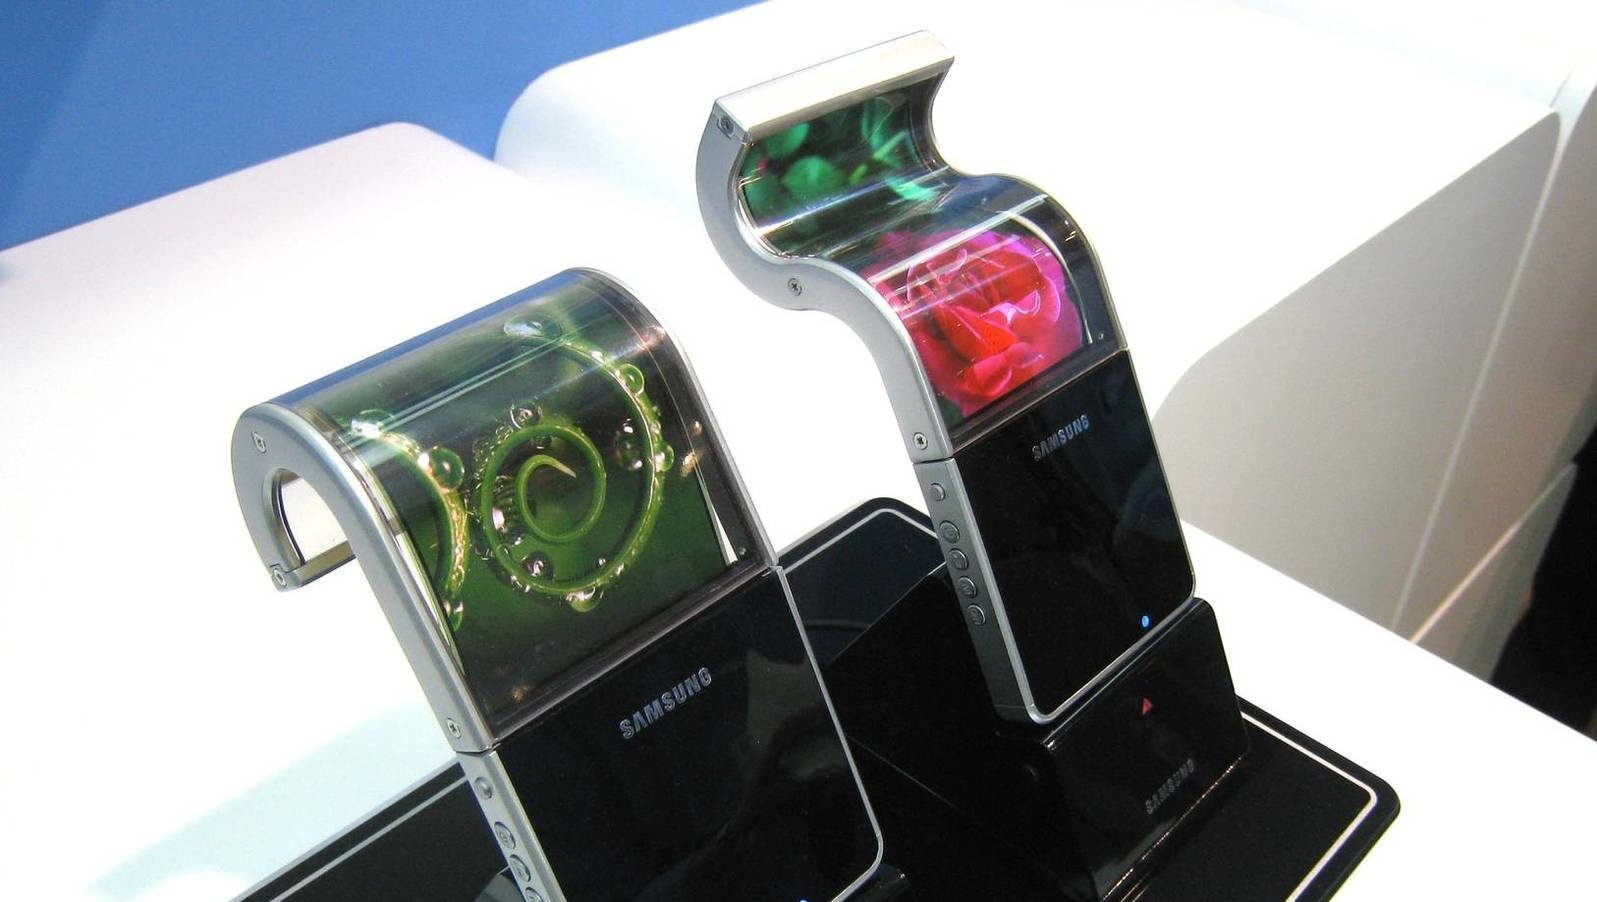 Samsung Pantallas Oled Flexible Irrompible